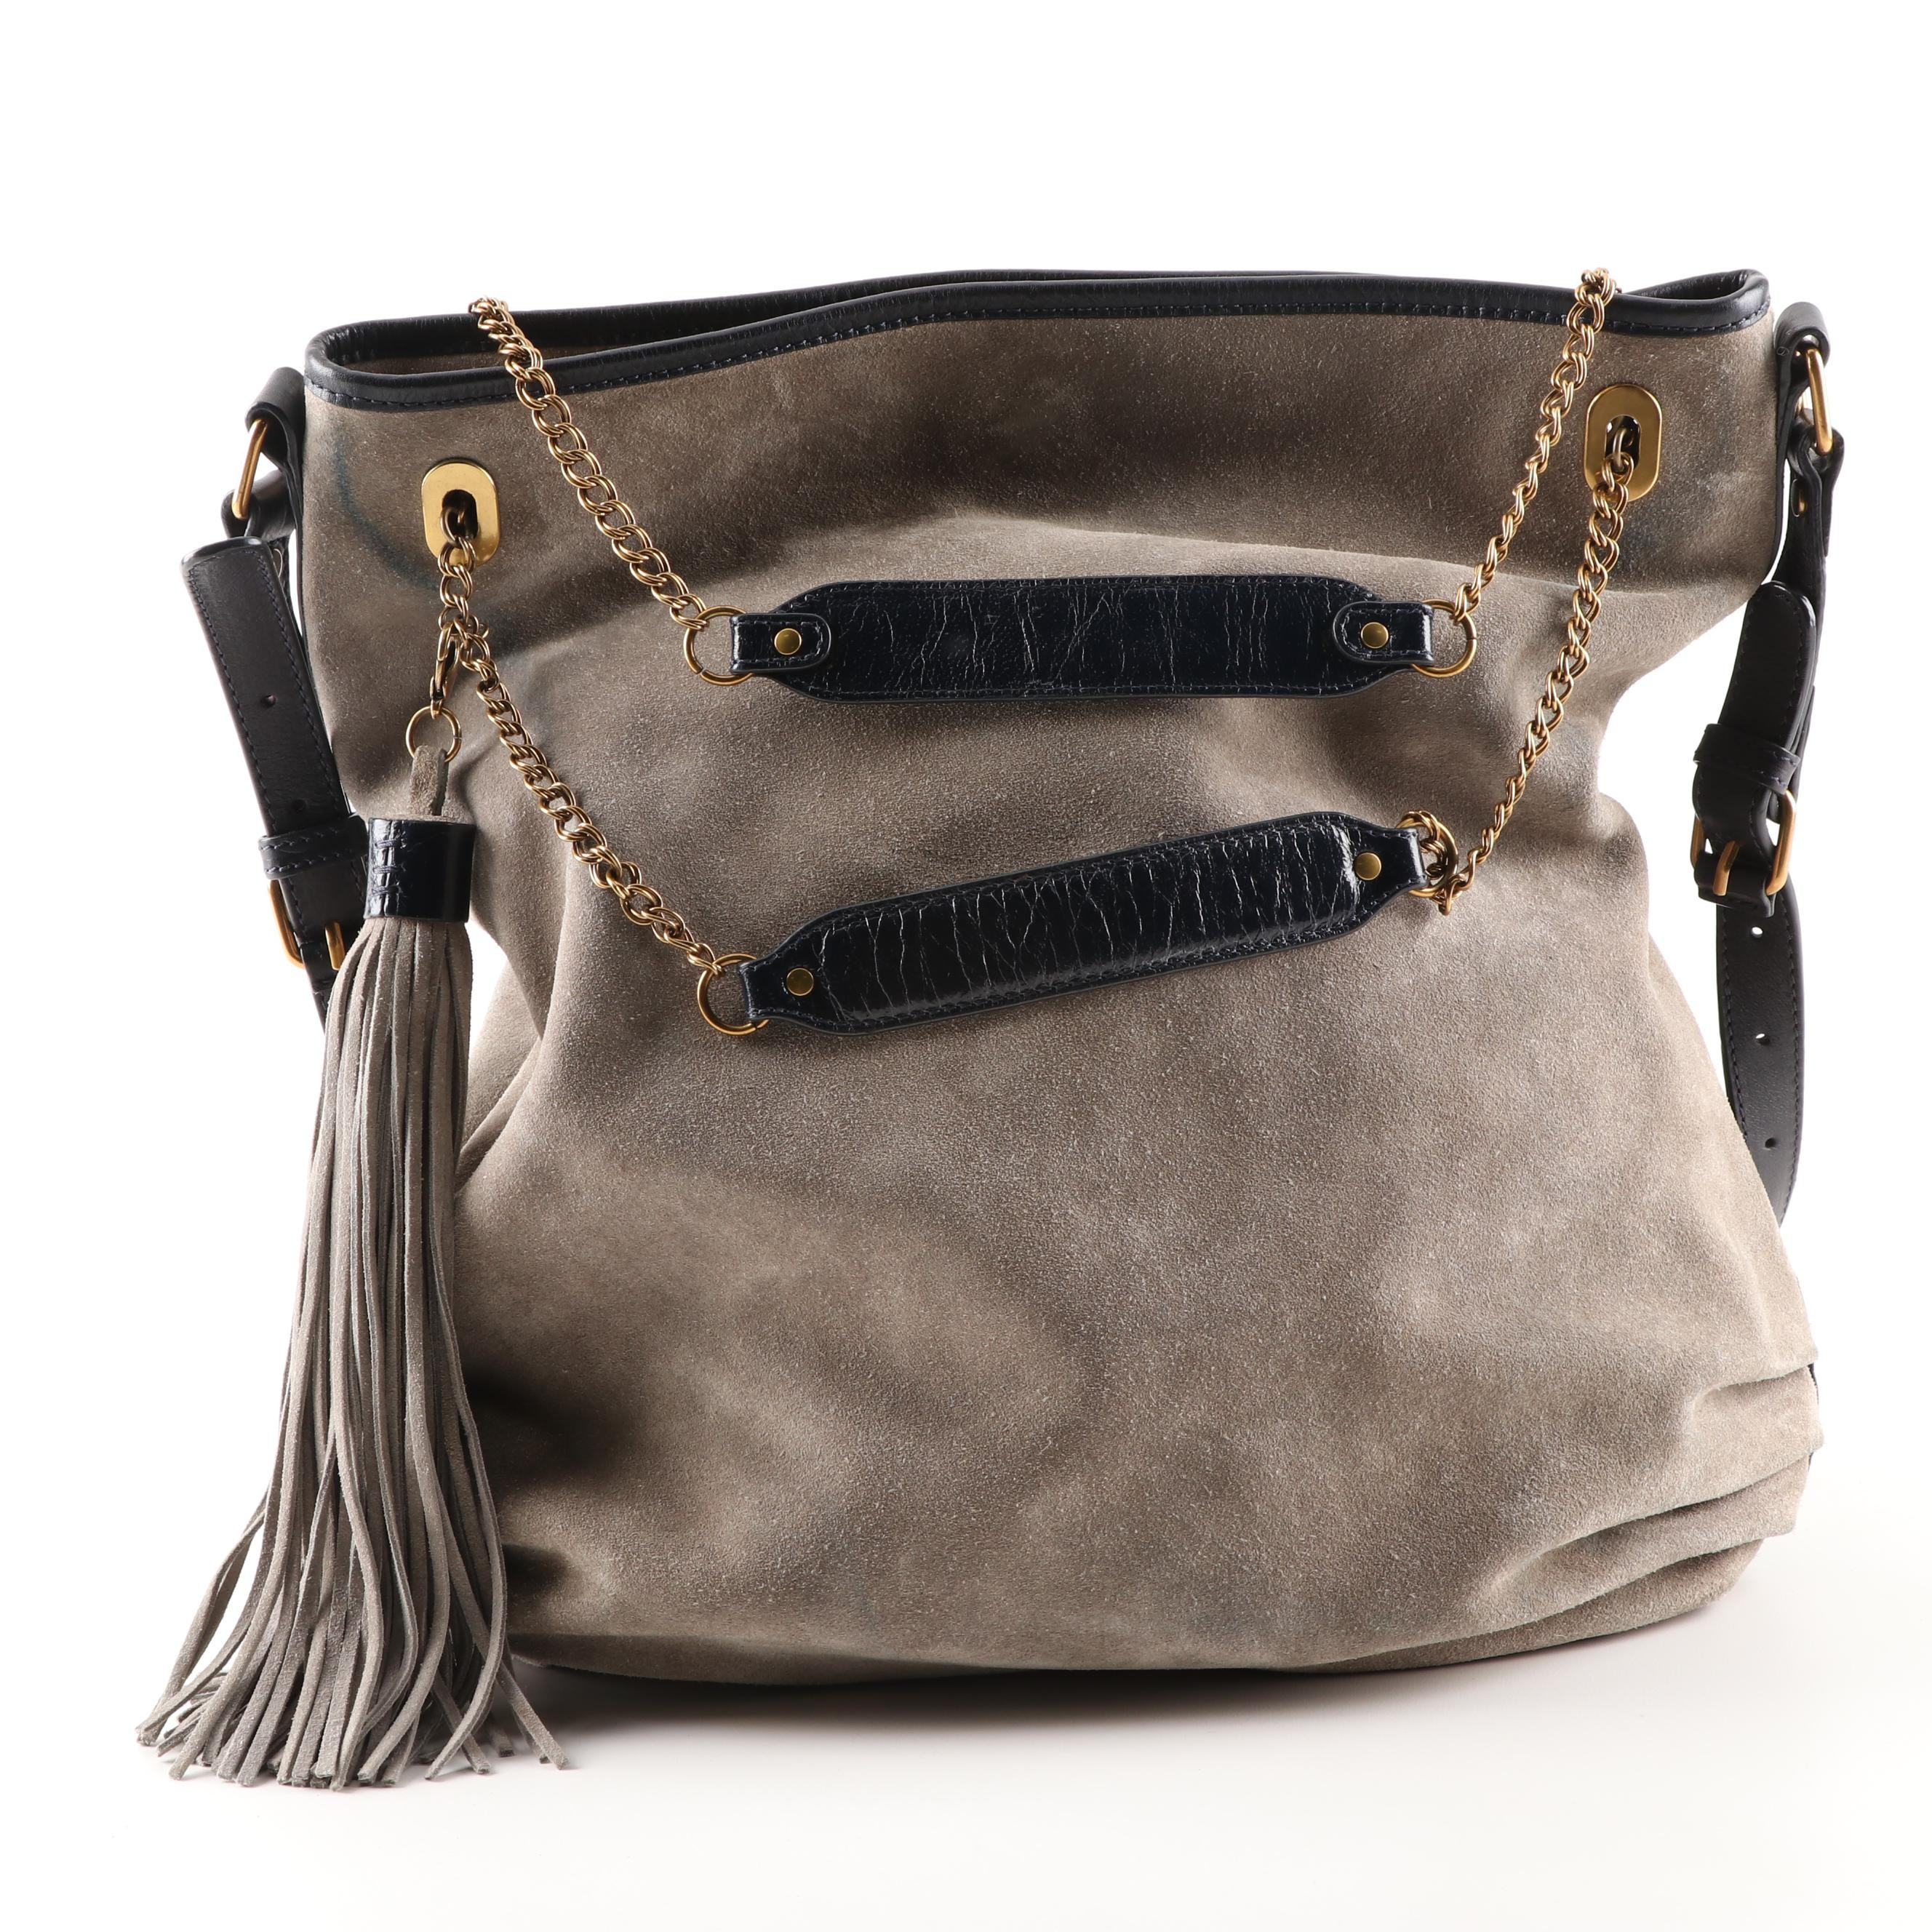 Vanessa Bruno Gray Suede and Leather Hobo Bag with Tassel